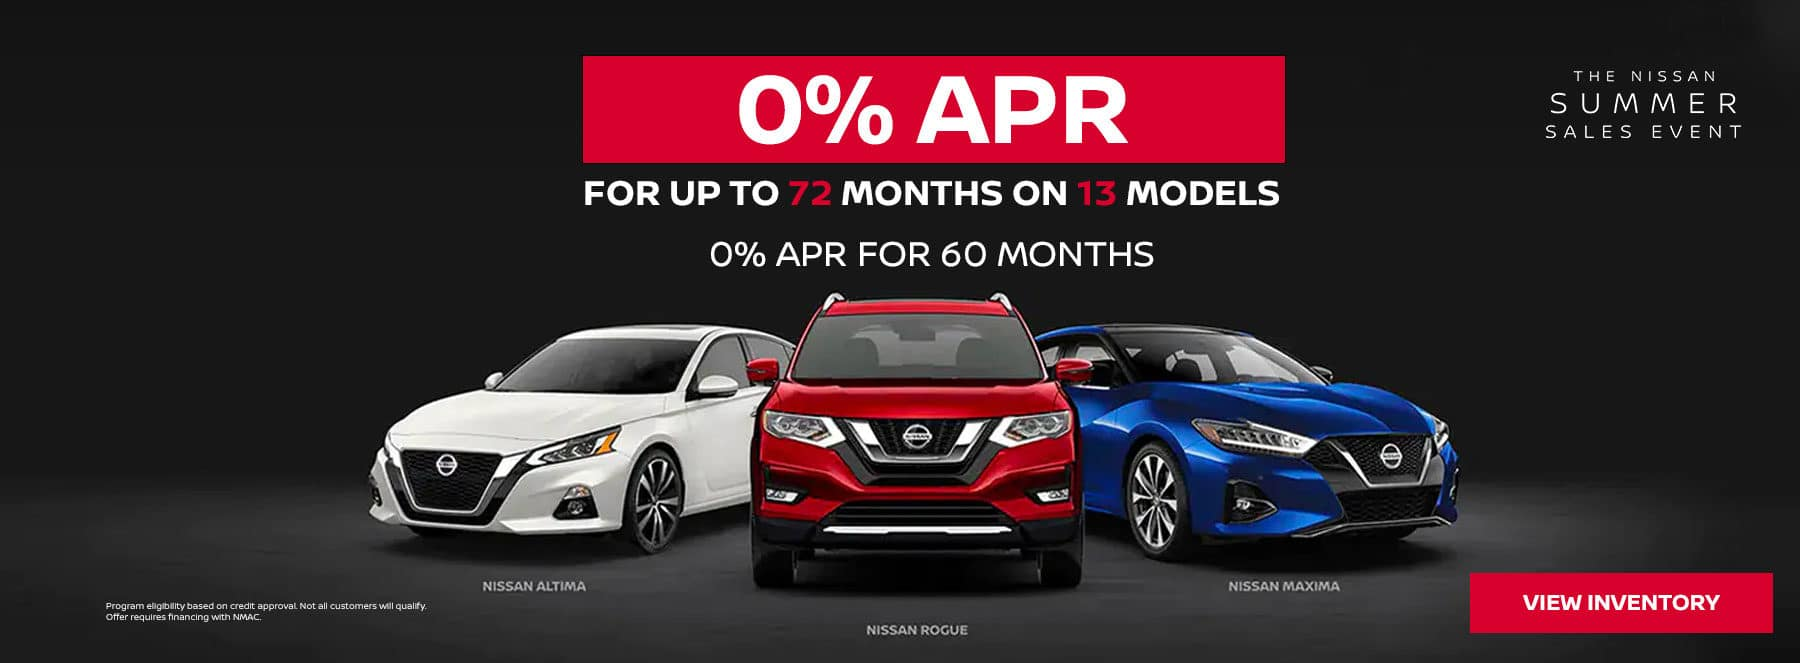 0% for up to 72 months on 13 different models. 0% APR for 60 months.